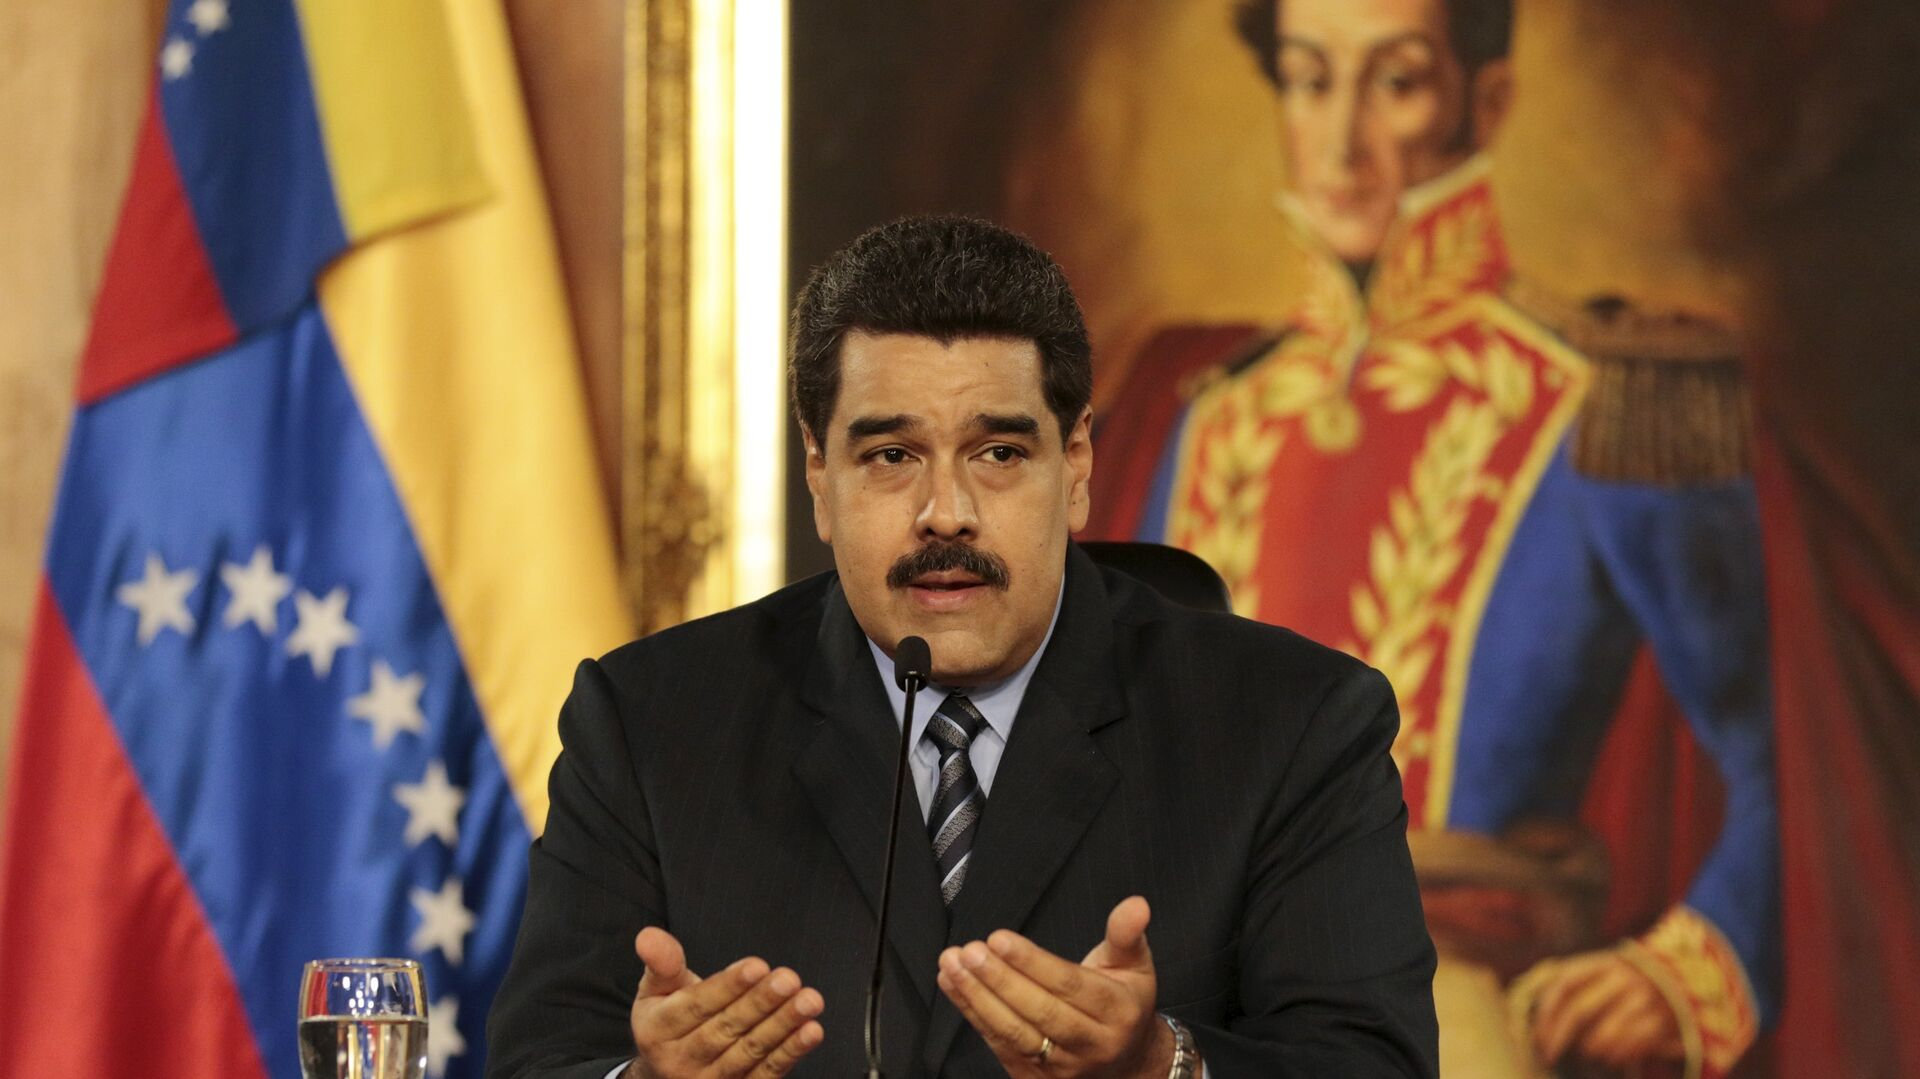 Venezuela's President Nicolas Maduro speaks during a meeting at Miraflores Palace, in front of a painting of South American revolutionary hero Simon Bolivar, in Caracas, in this handout picture provided by Miraflores Palace on February 17, 2016.  - Sputnik Mundo, 1920, 21.08.2021